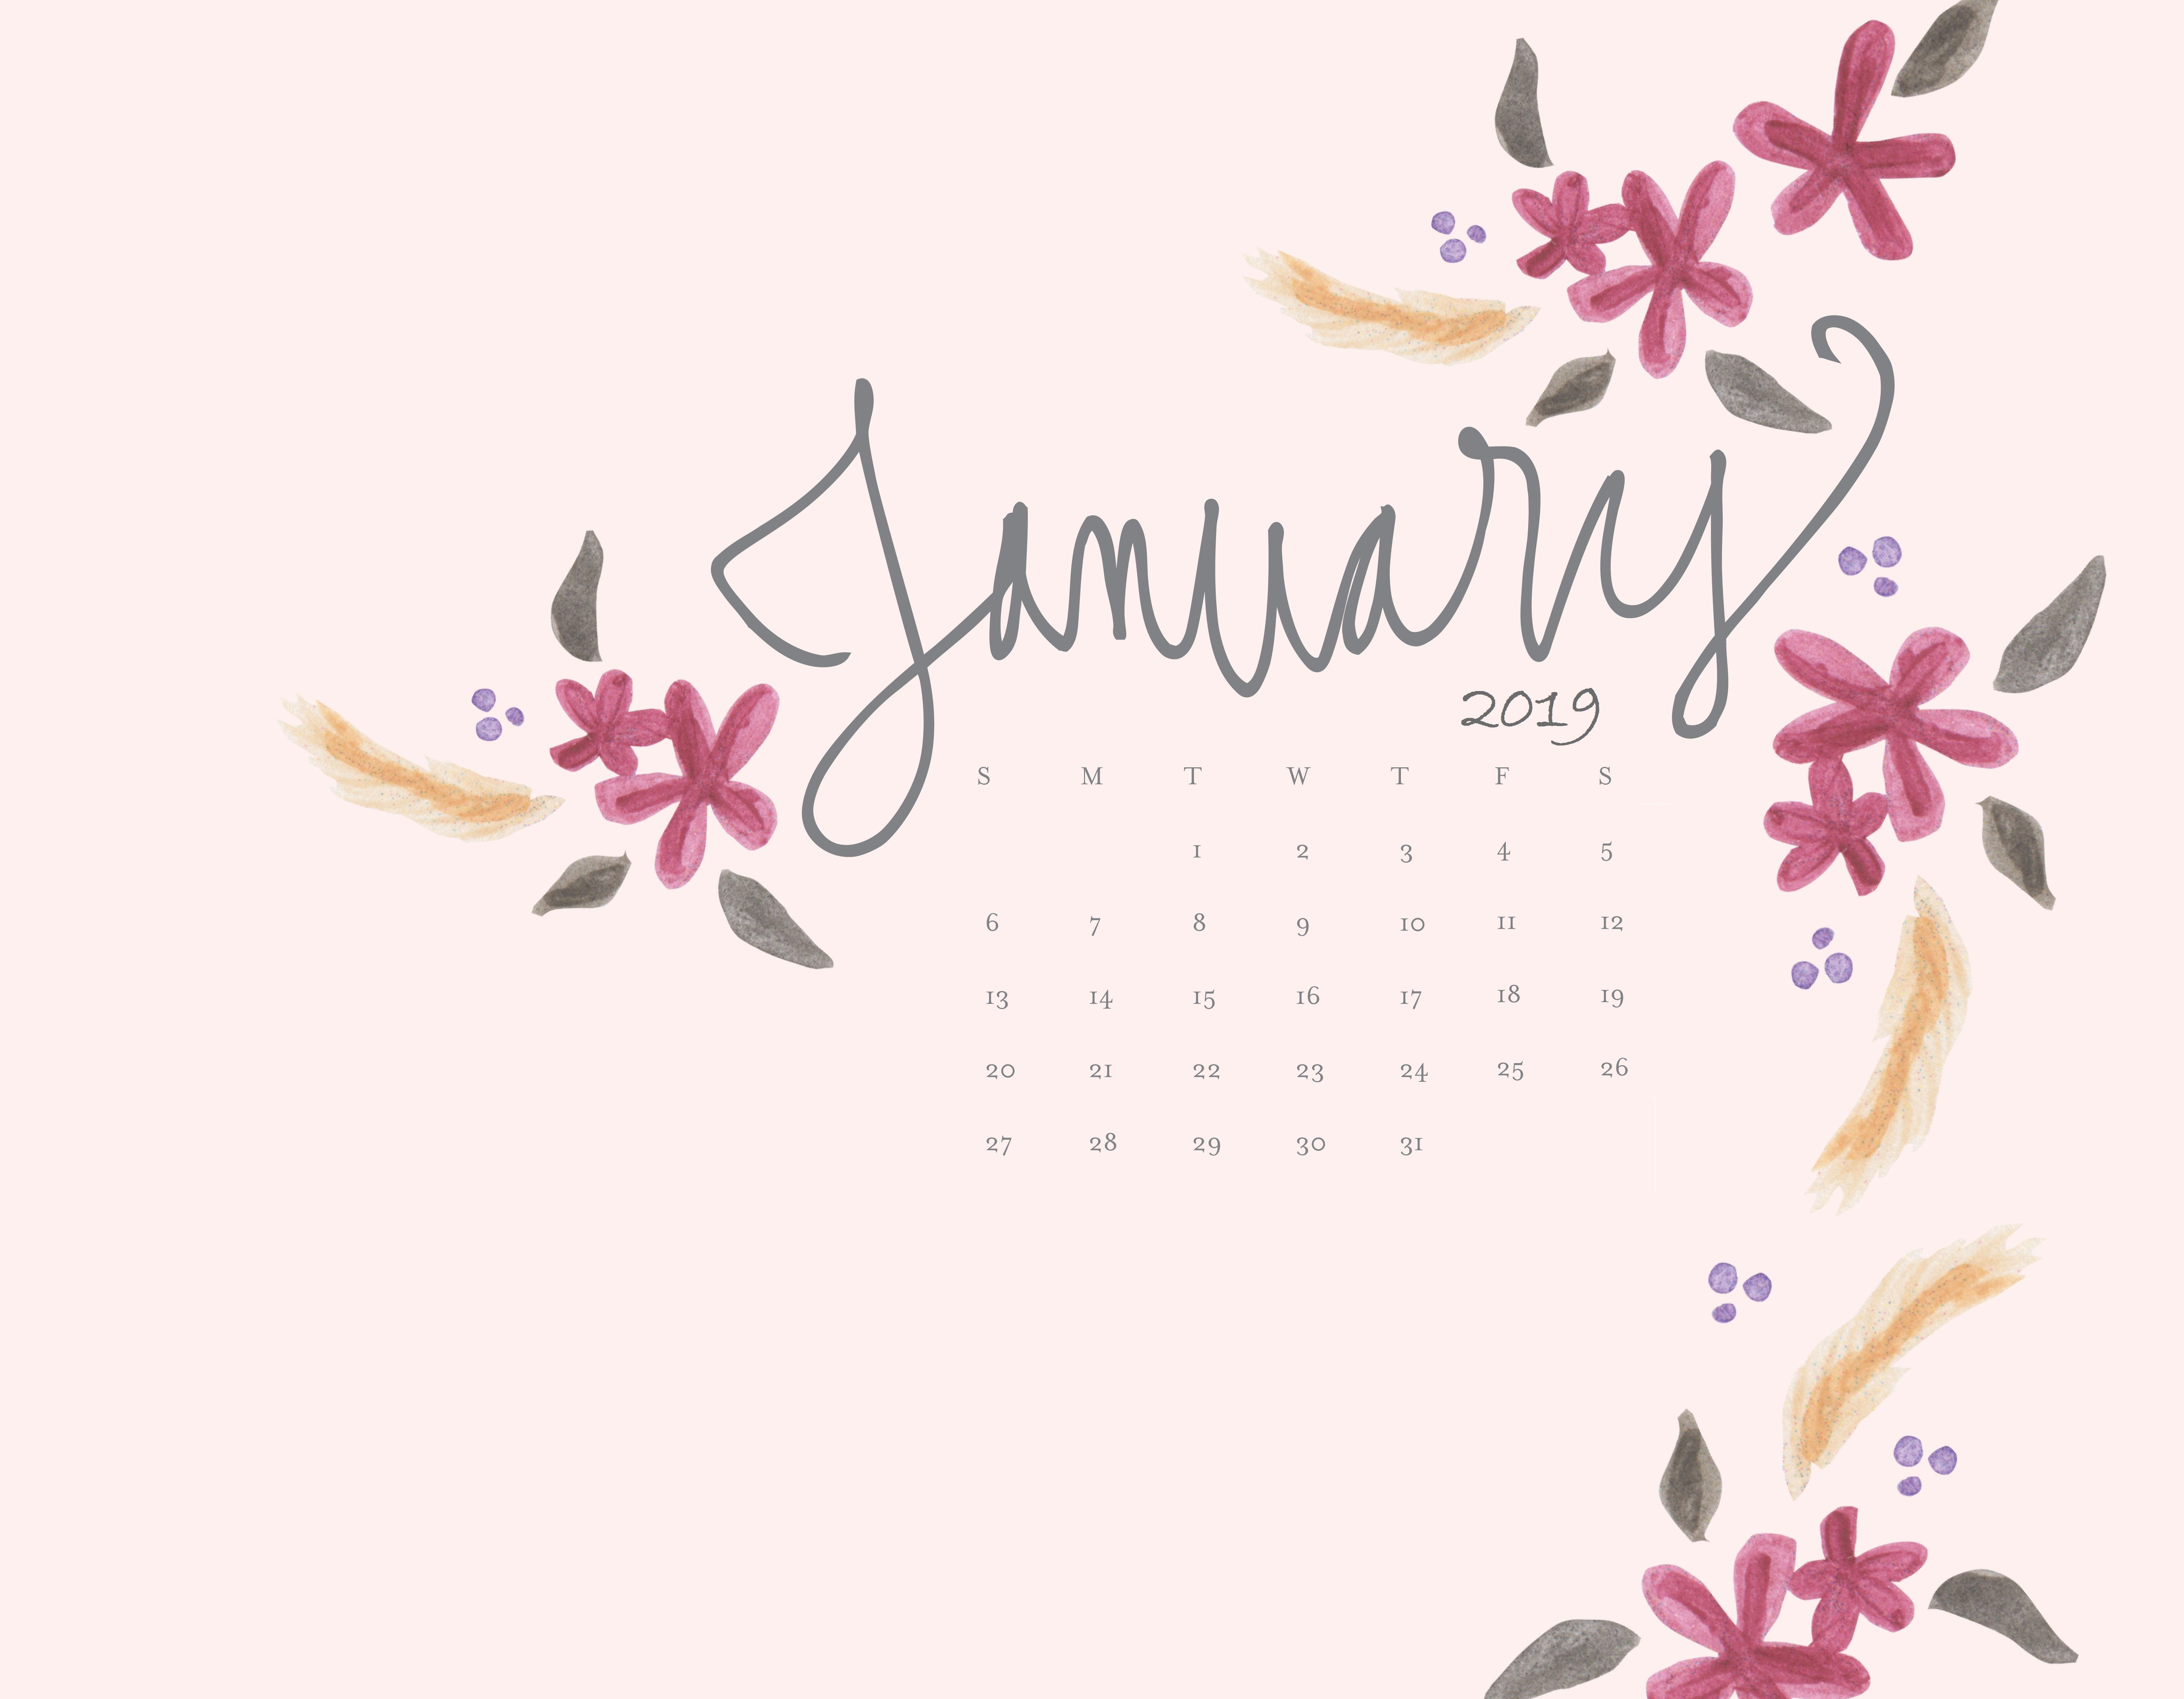 January 2019 Calendar Desktop Background january 2019 calendar wallpaper calendar 2018 January 2019 HD